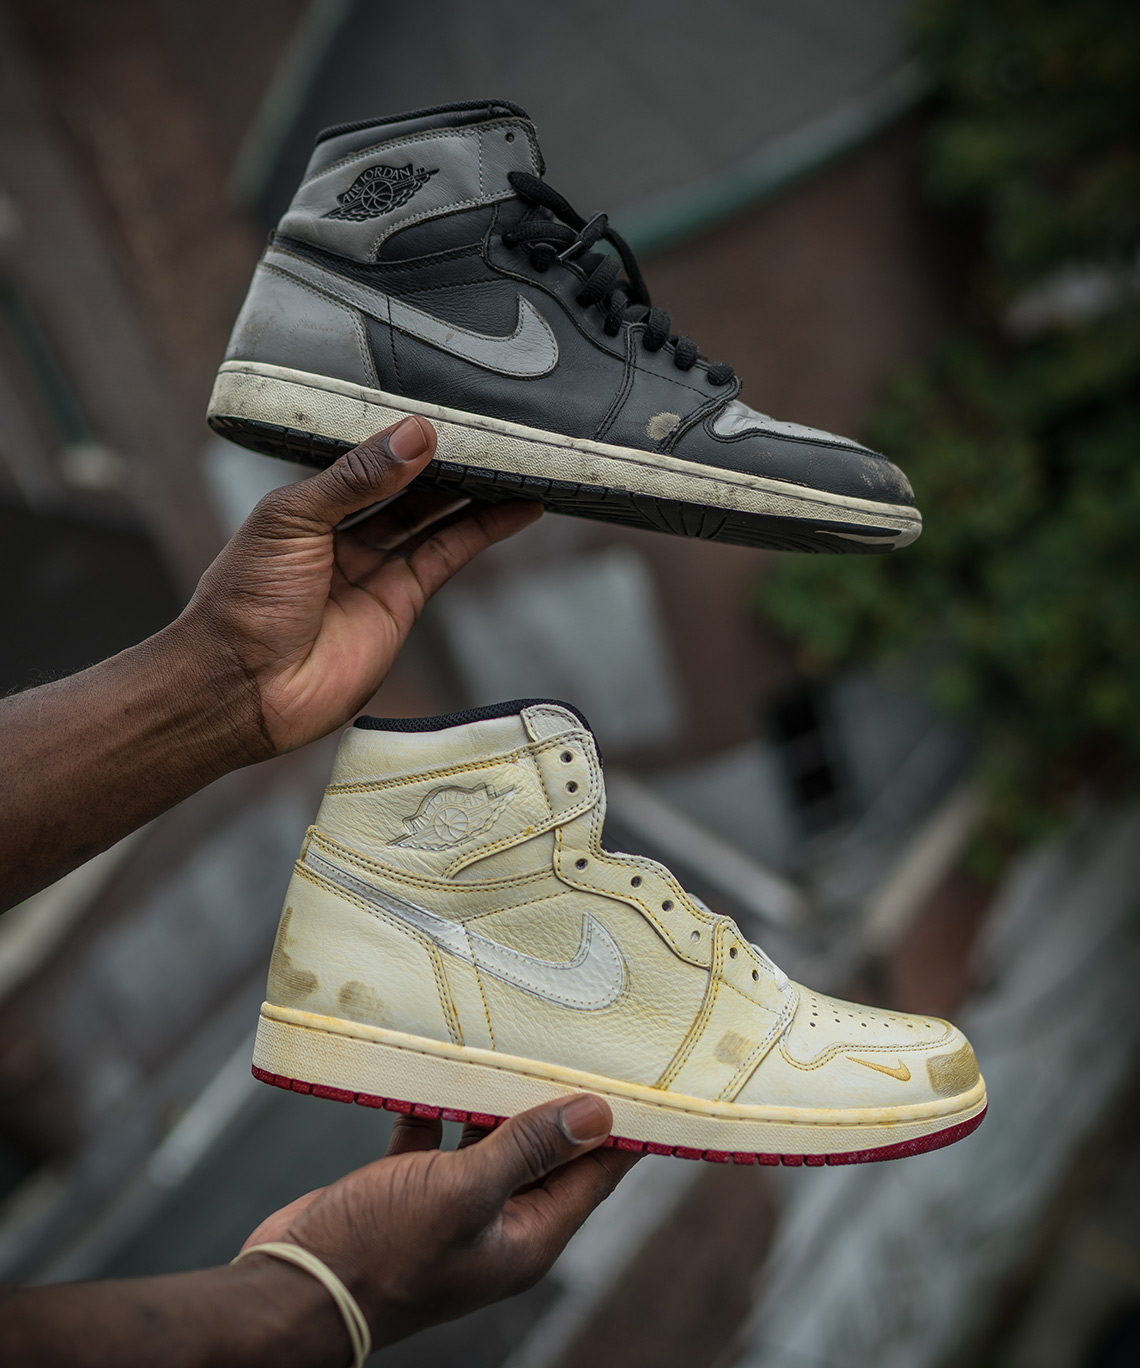 dfe61926e7e Nigel Sylvester Reveals The Destroyed Air Jordan 1s That Inspired ...